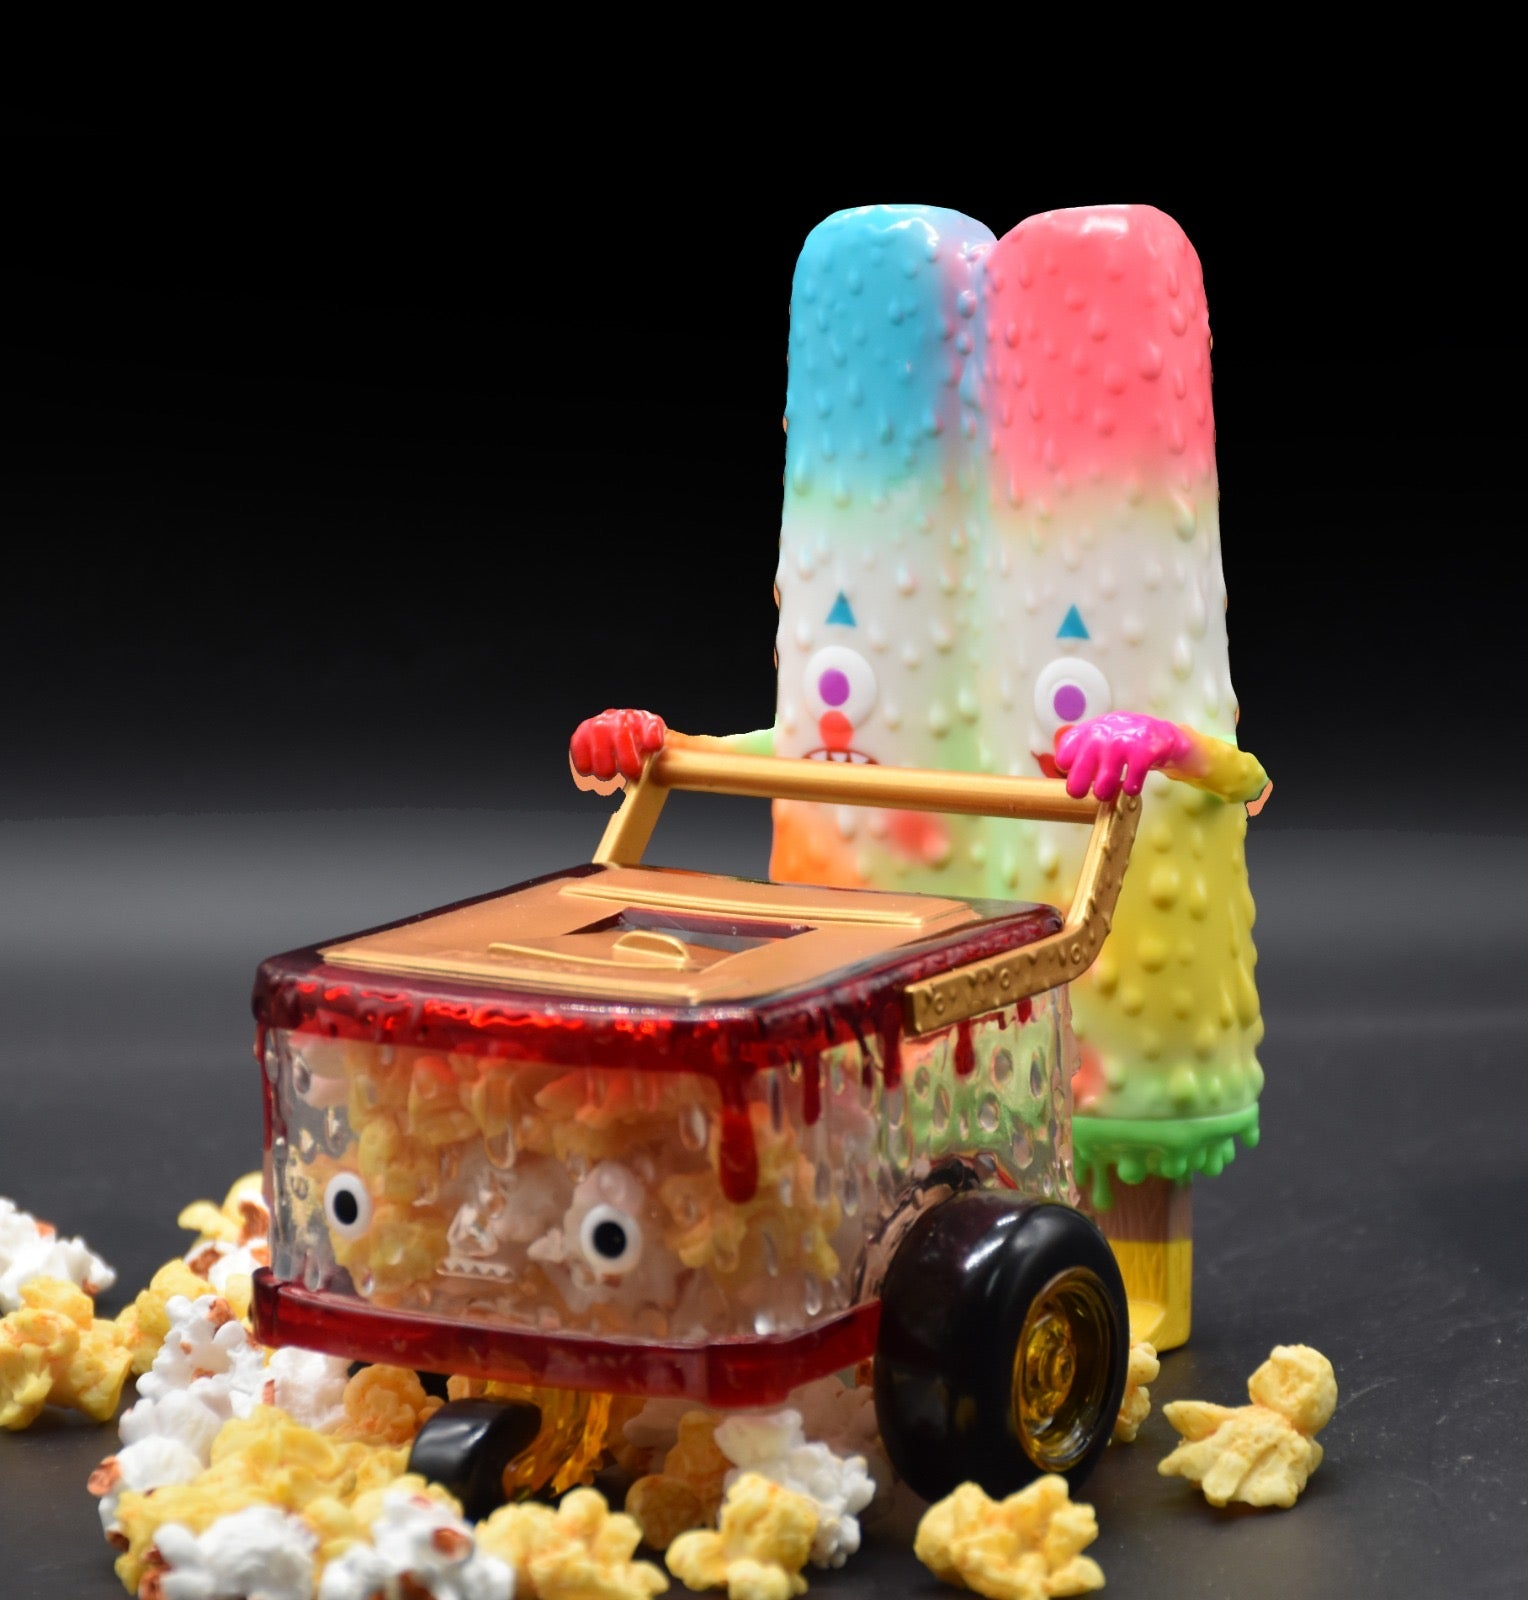 Popsicle Mon - Popcorn Popsicle Cart Set by 16M